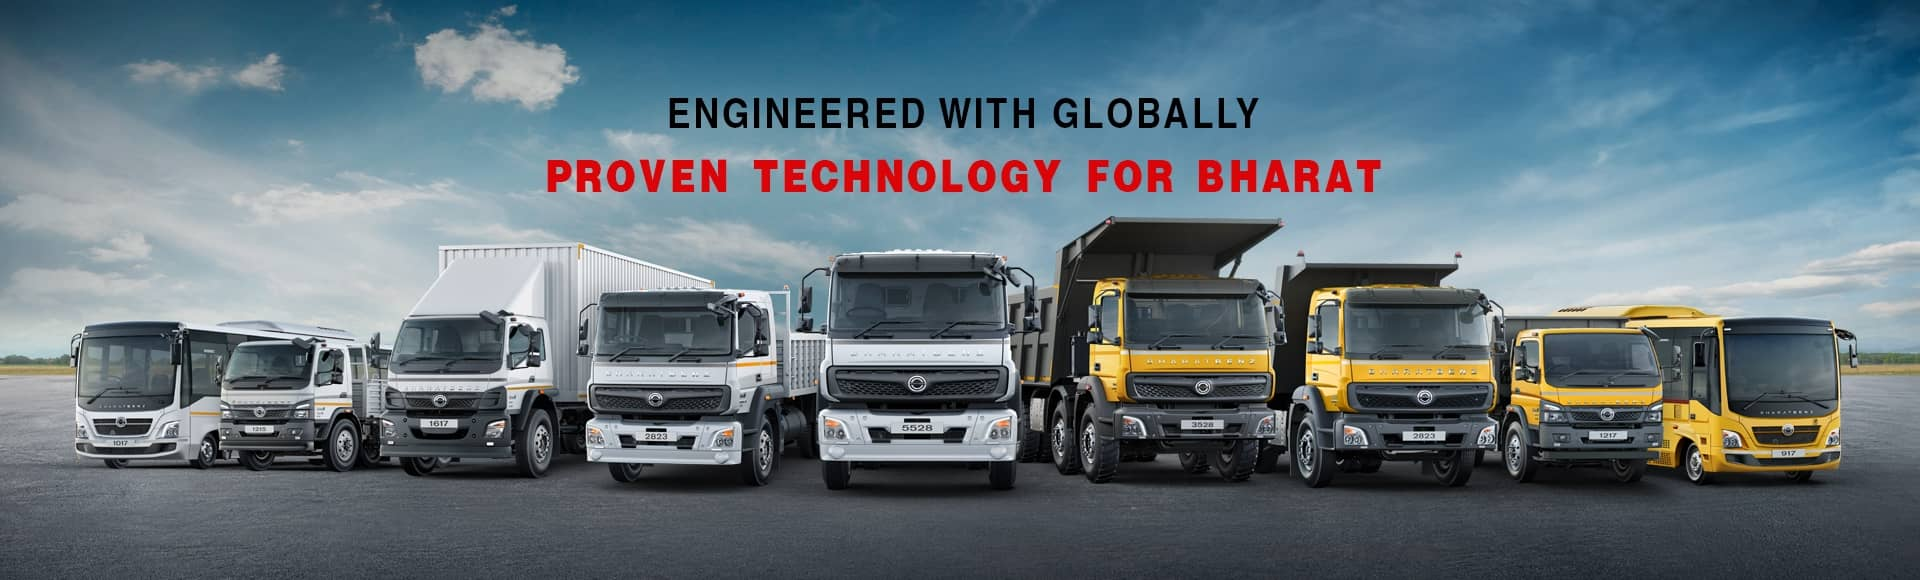 Transforming Indian Commercial Vehicle Industry through adaptive mobility solutions.